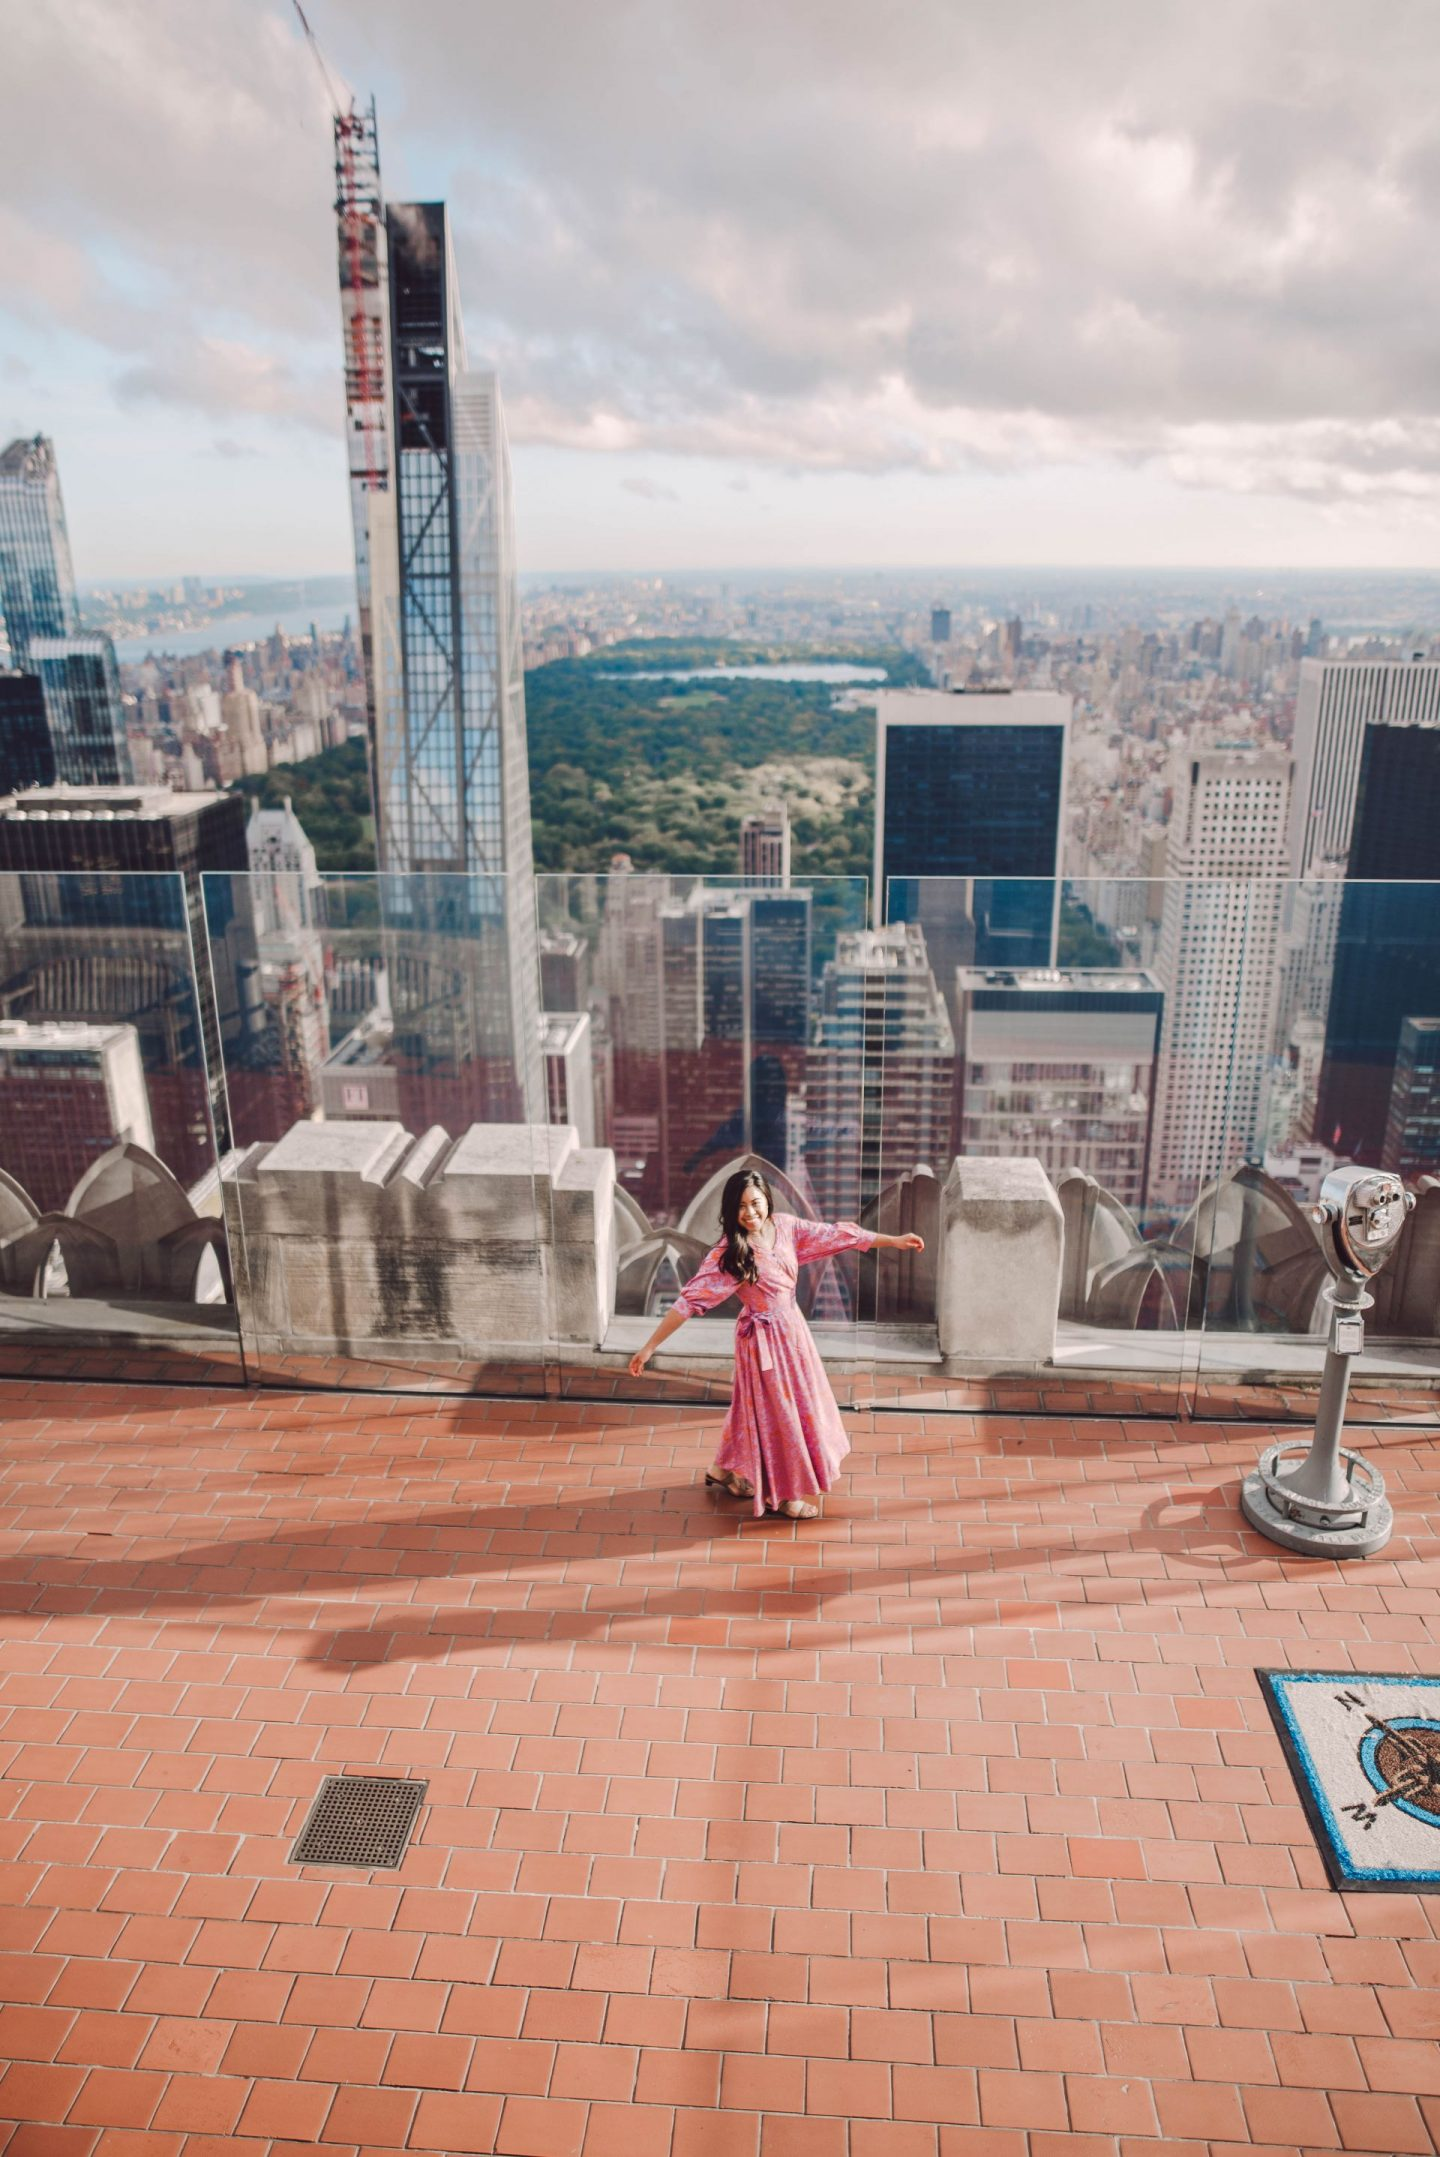 top of the rock photography tips – visiting the top of the rock – top of the rock tips – best attractions in New York city – Instagram spots in New York City – Things to do in New York City – great photo at top of the rock